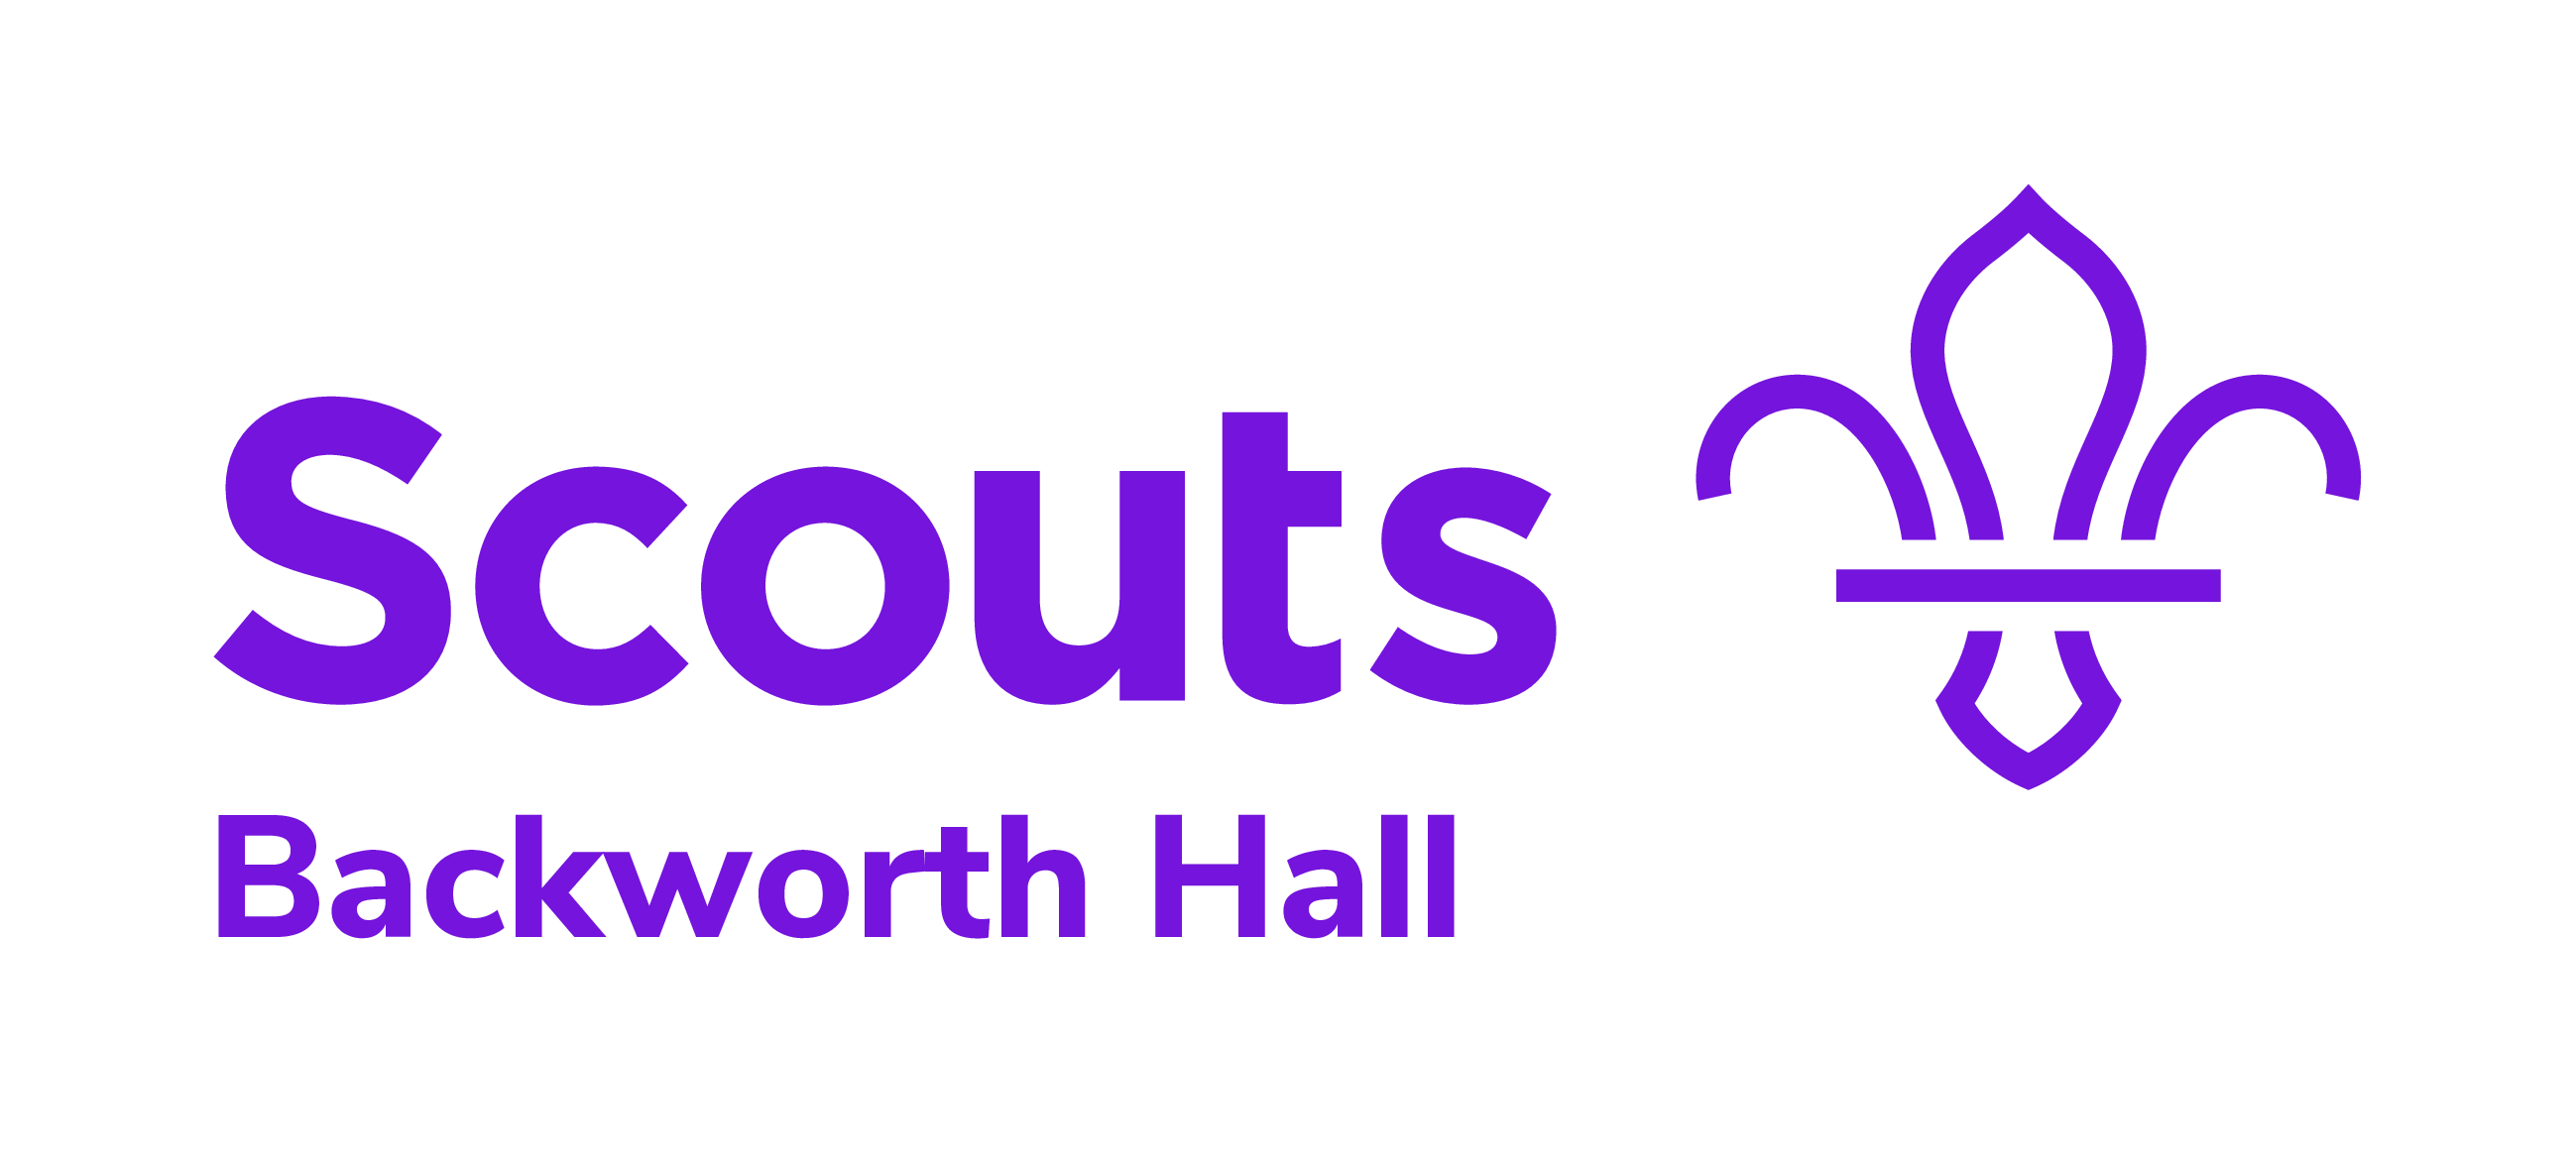 Backworth Hall Scouts (formerly 3rd Killingworth Scout Group)